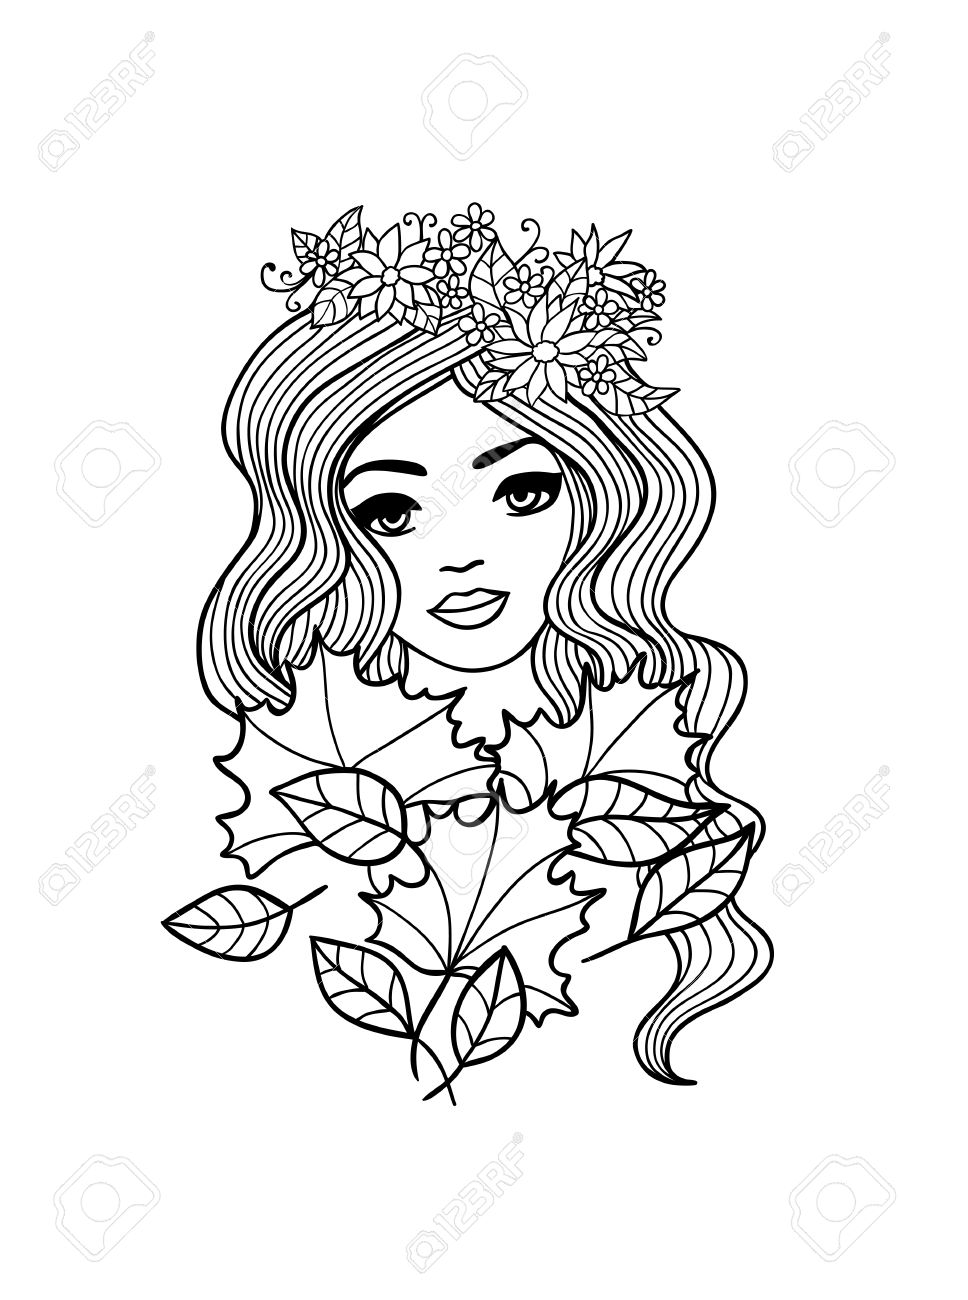 Black And White Outline Girl With Fall Leaves Illustration Hand